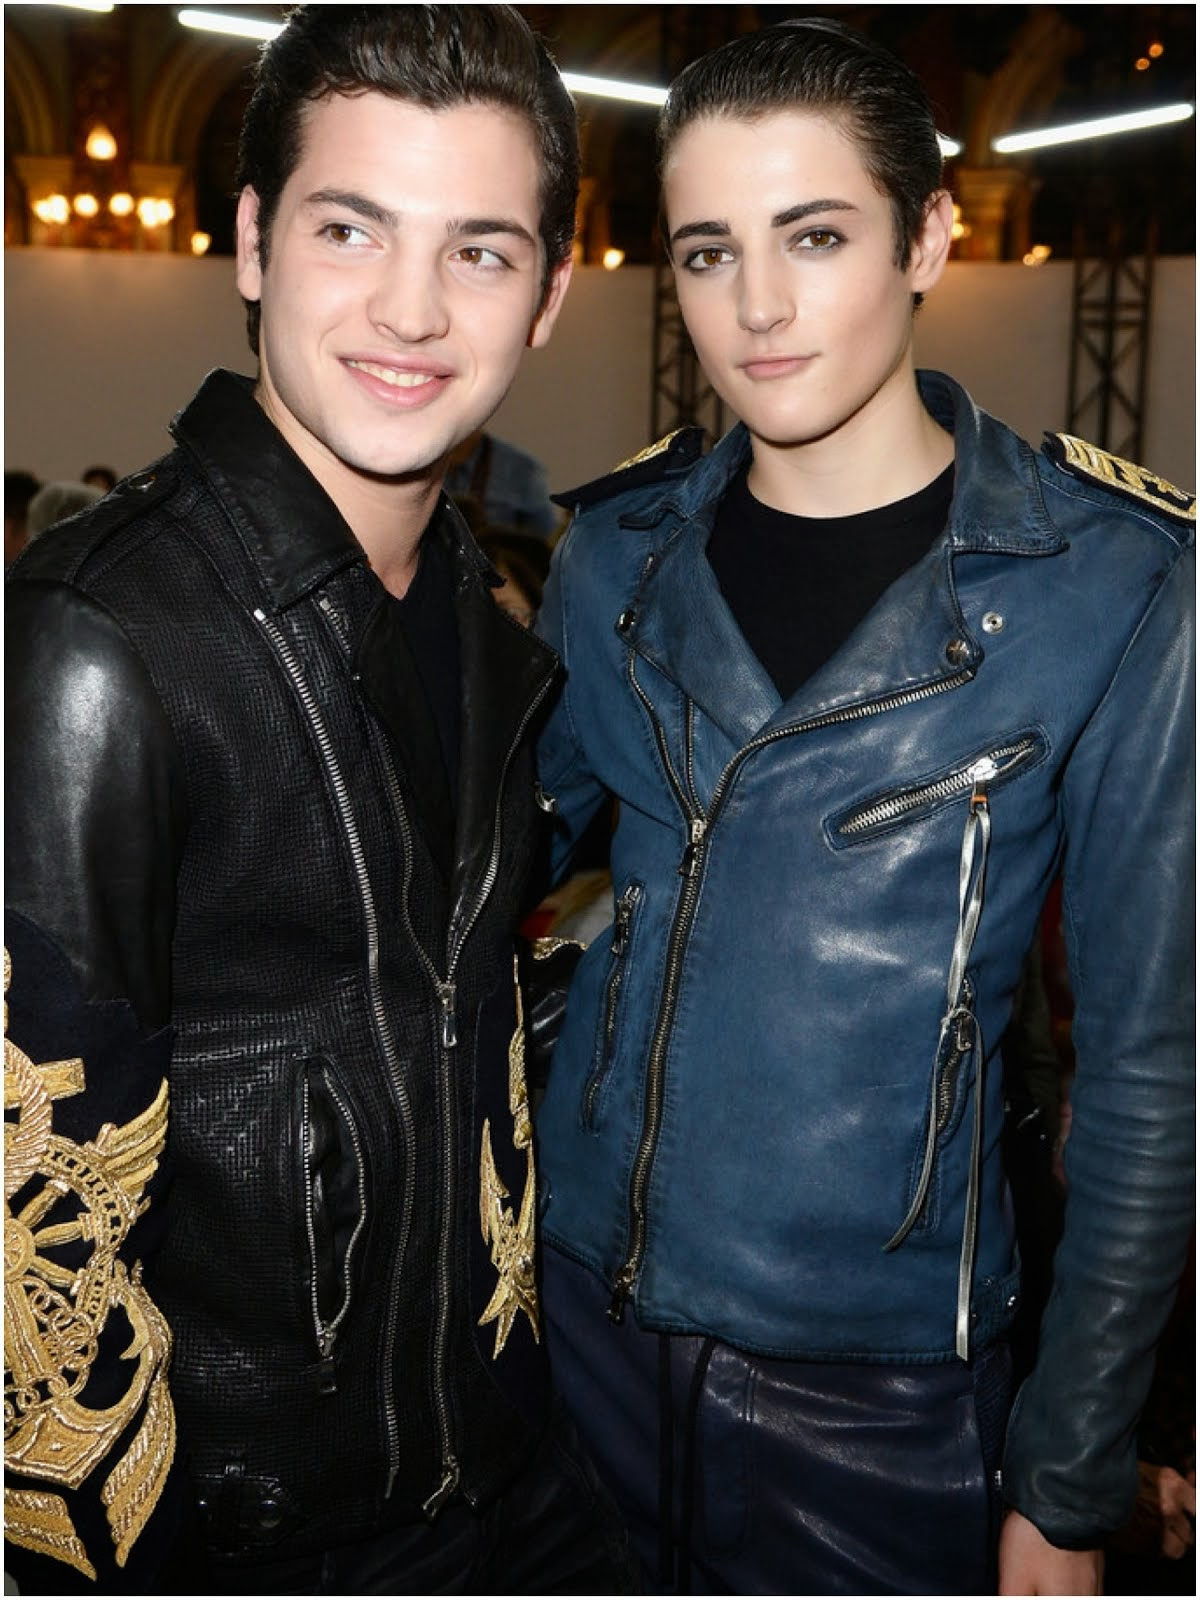 00O00 Menswear Blog: Peter Brant Jr and Harry Brant in Balmain - Balmain Spring Summer 2014 00000 blog 00000h blog ooooo blog oooooh blog